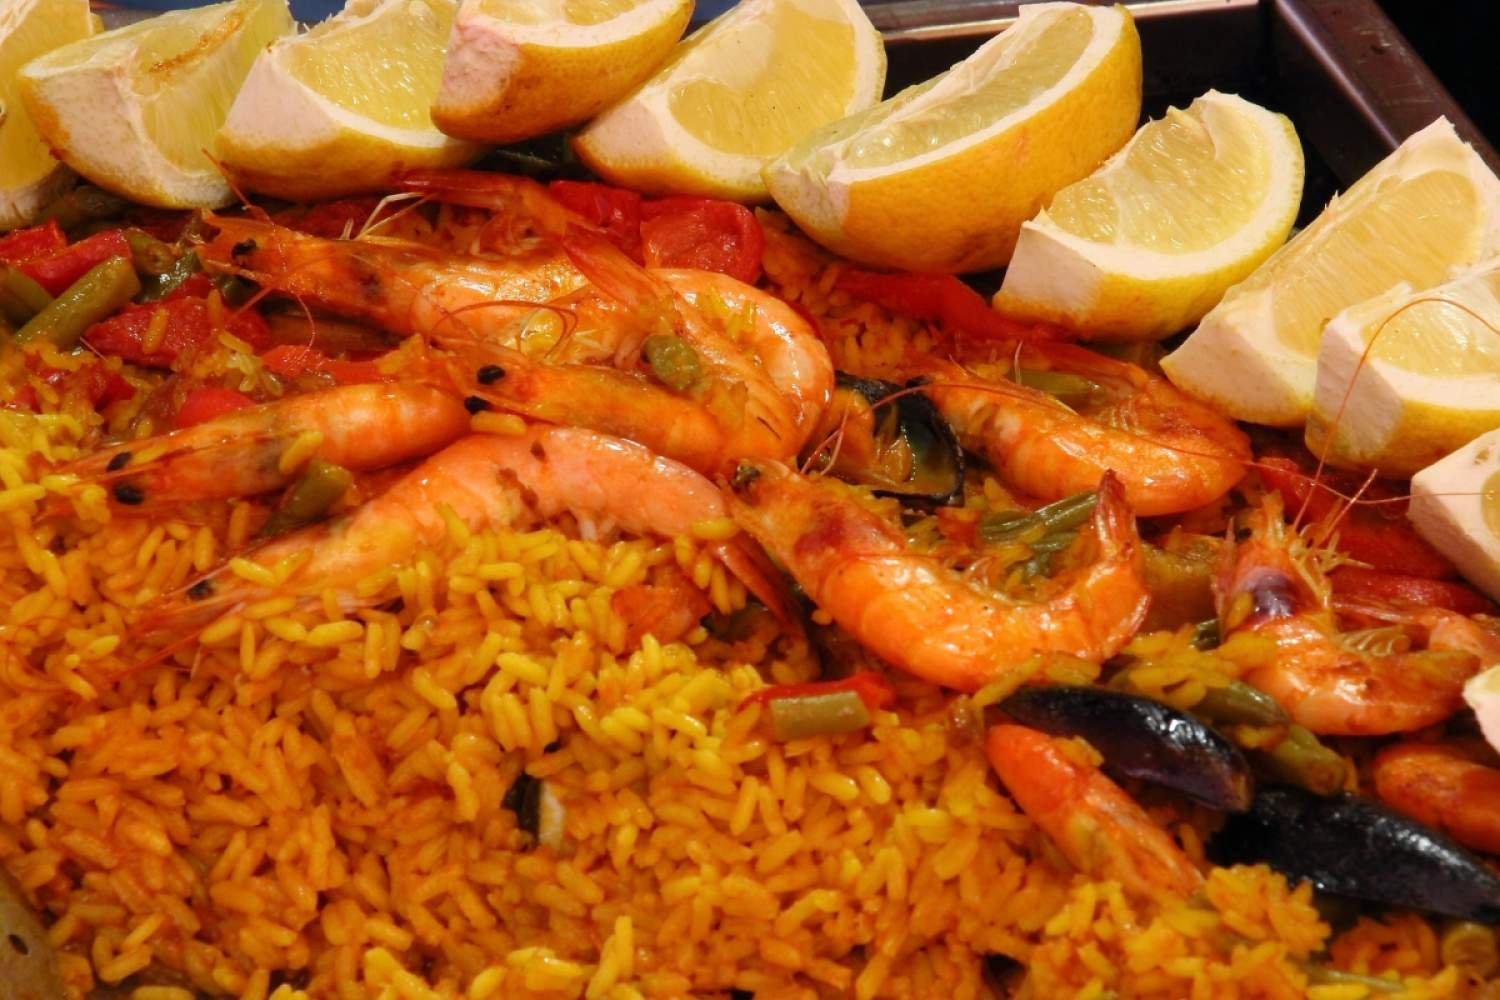 Arroz de mariscos in Lisbon, Portugal